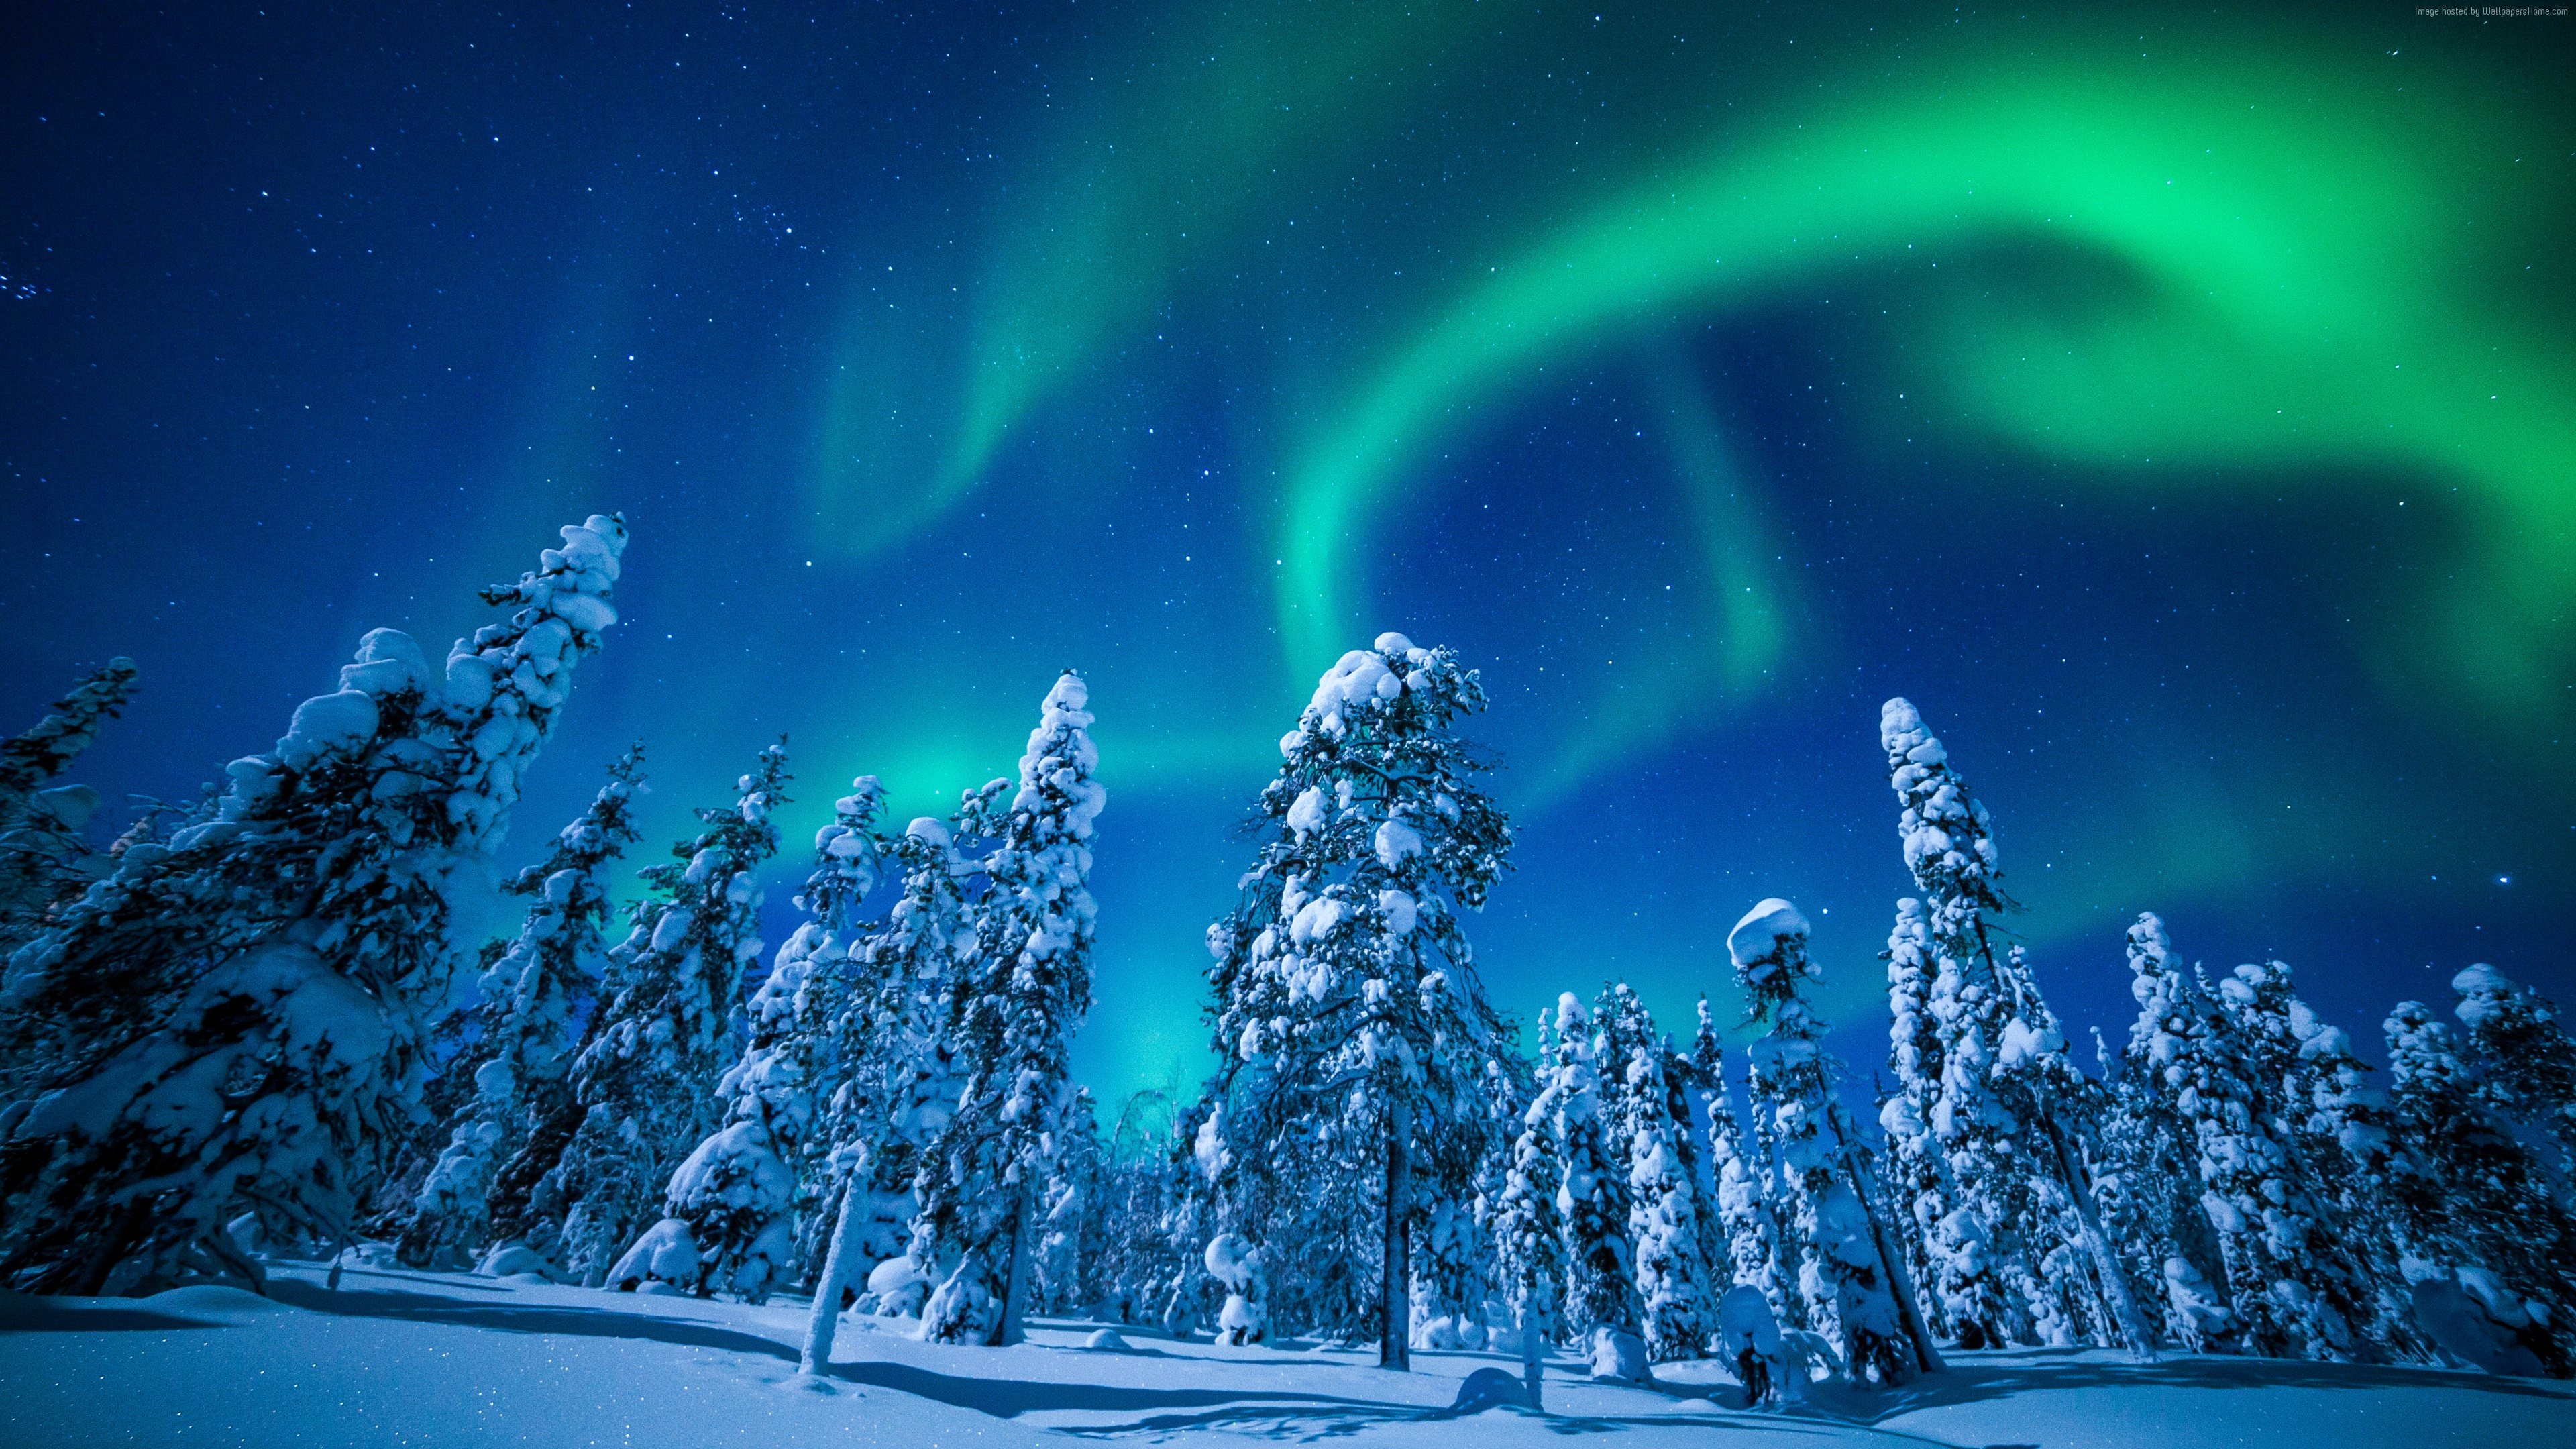 Wallpaper Lapland Finland Winter Snow Tree Night Northern Lights 5k Nature